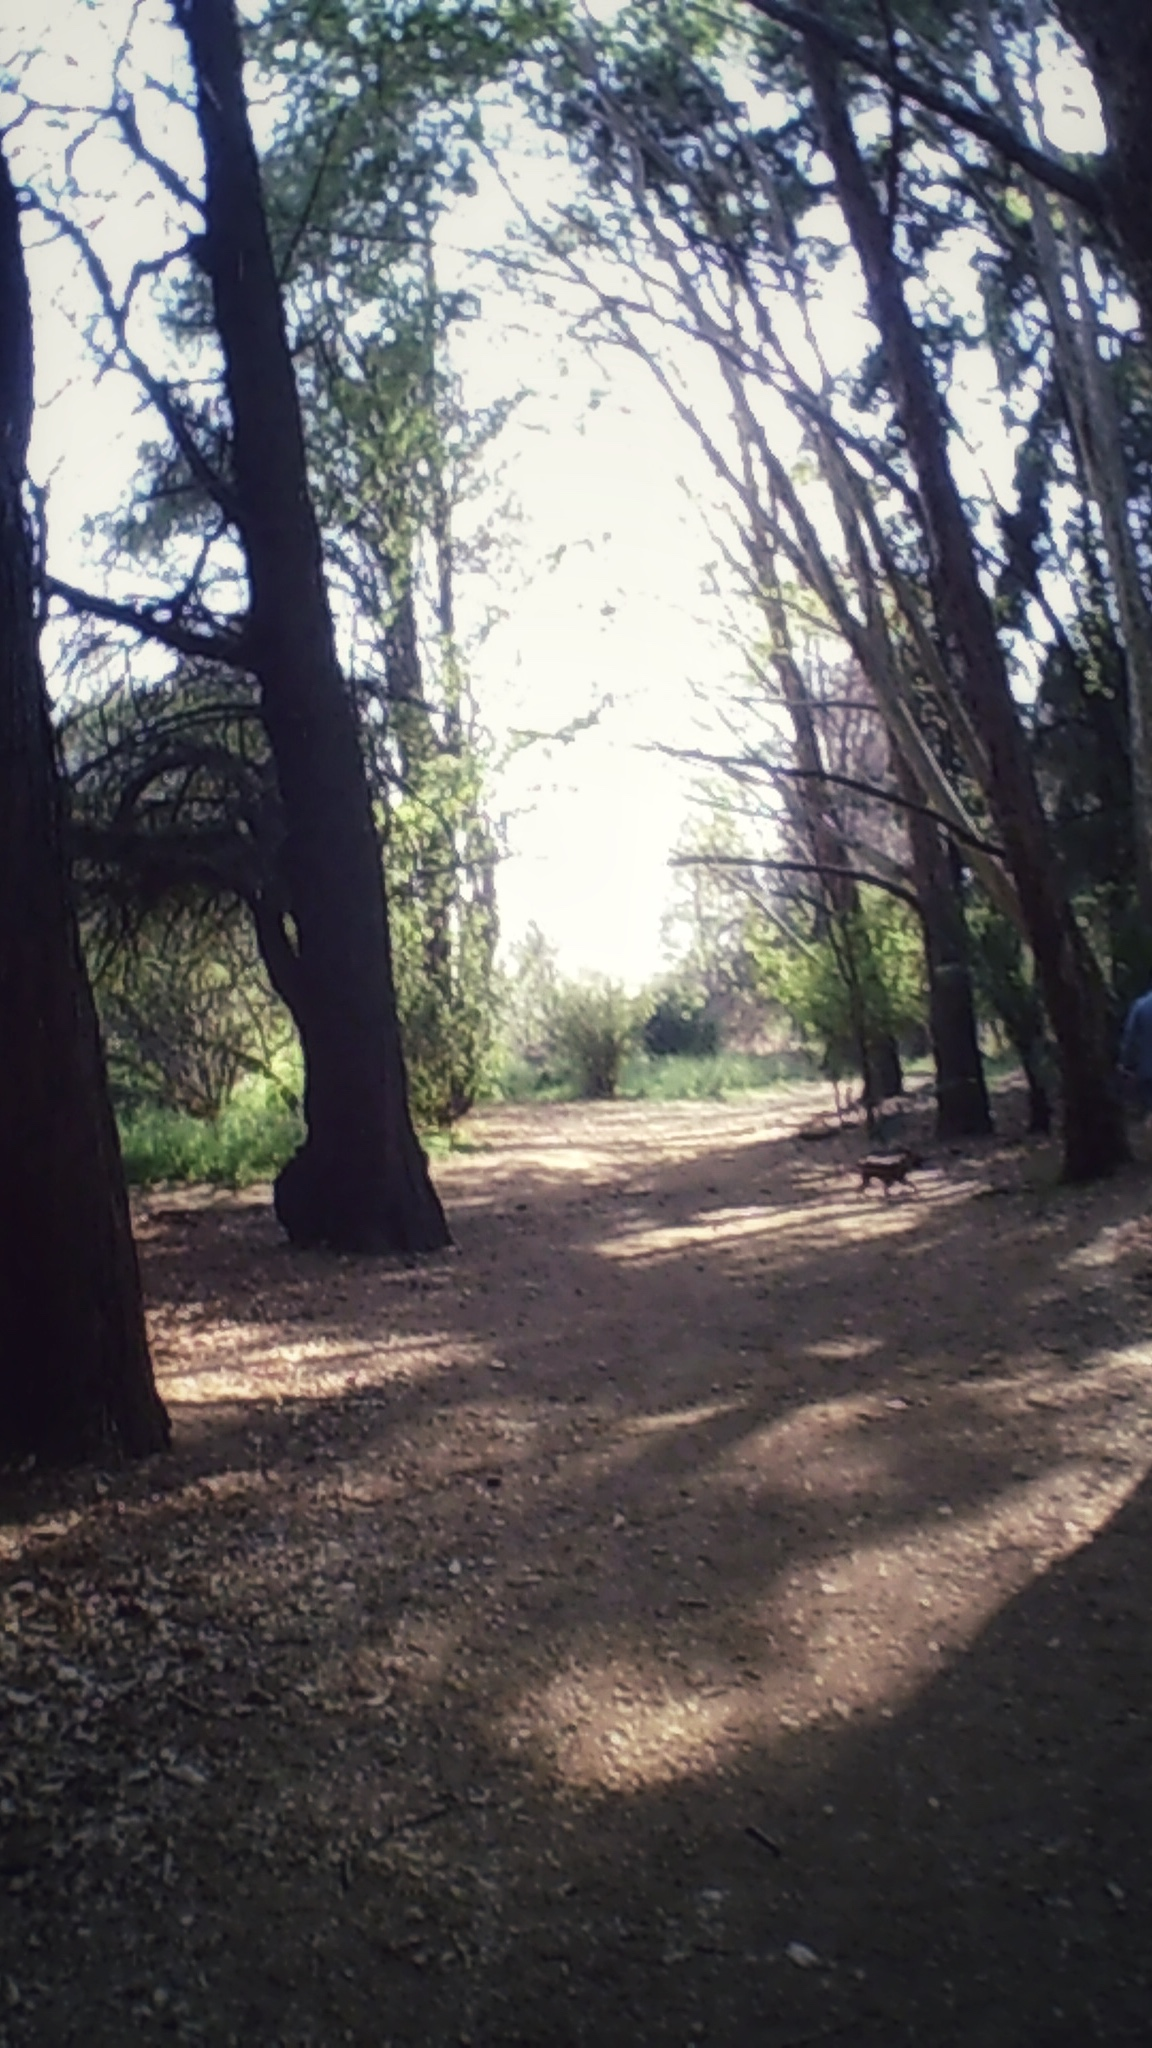 My favourite part in Emmarentia park. Or one of my favourite parts